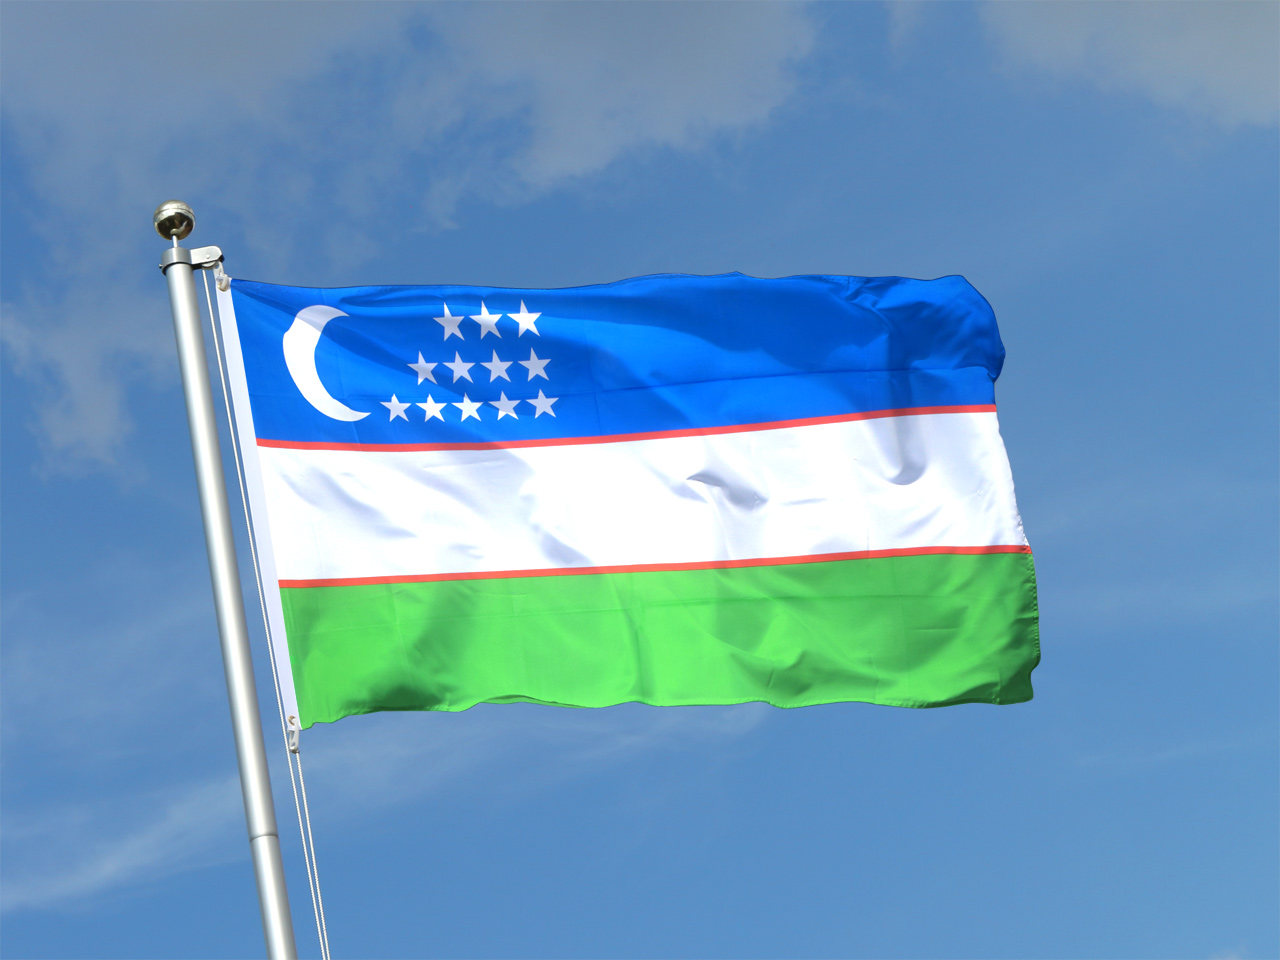 oceania and the republic of uzbekistan Capital facts for tashkent, uzbekistan april 23, 2018 by danny metrics uzbekistan flag noted for its special business district established to develop small to large enterprises, tashkent is the capital city for the republic of uzbekistan–a landlocked country in central asia.